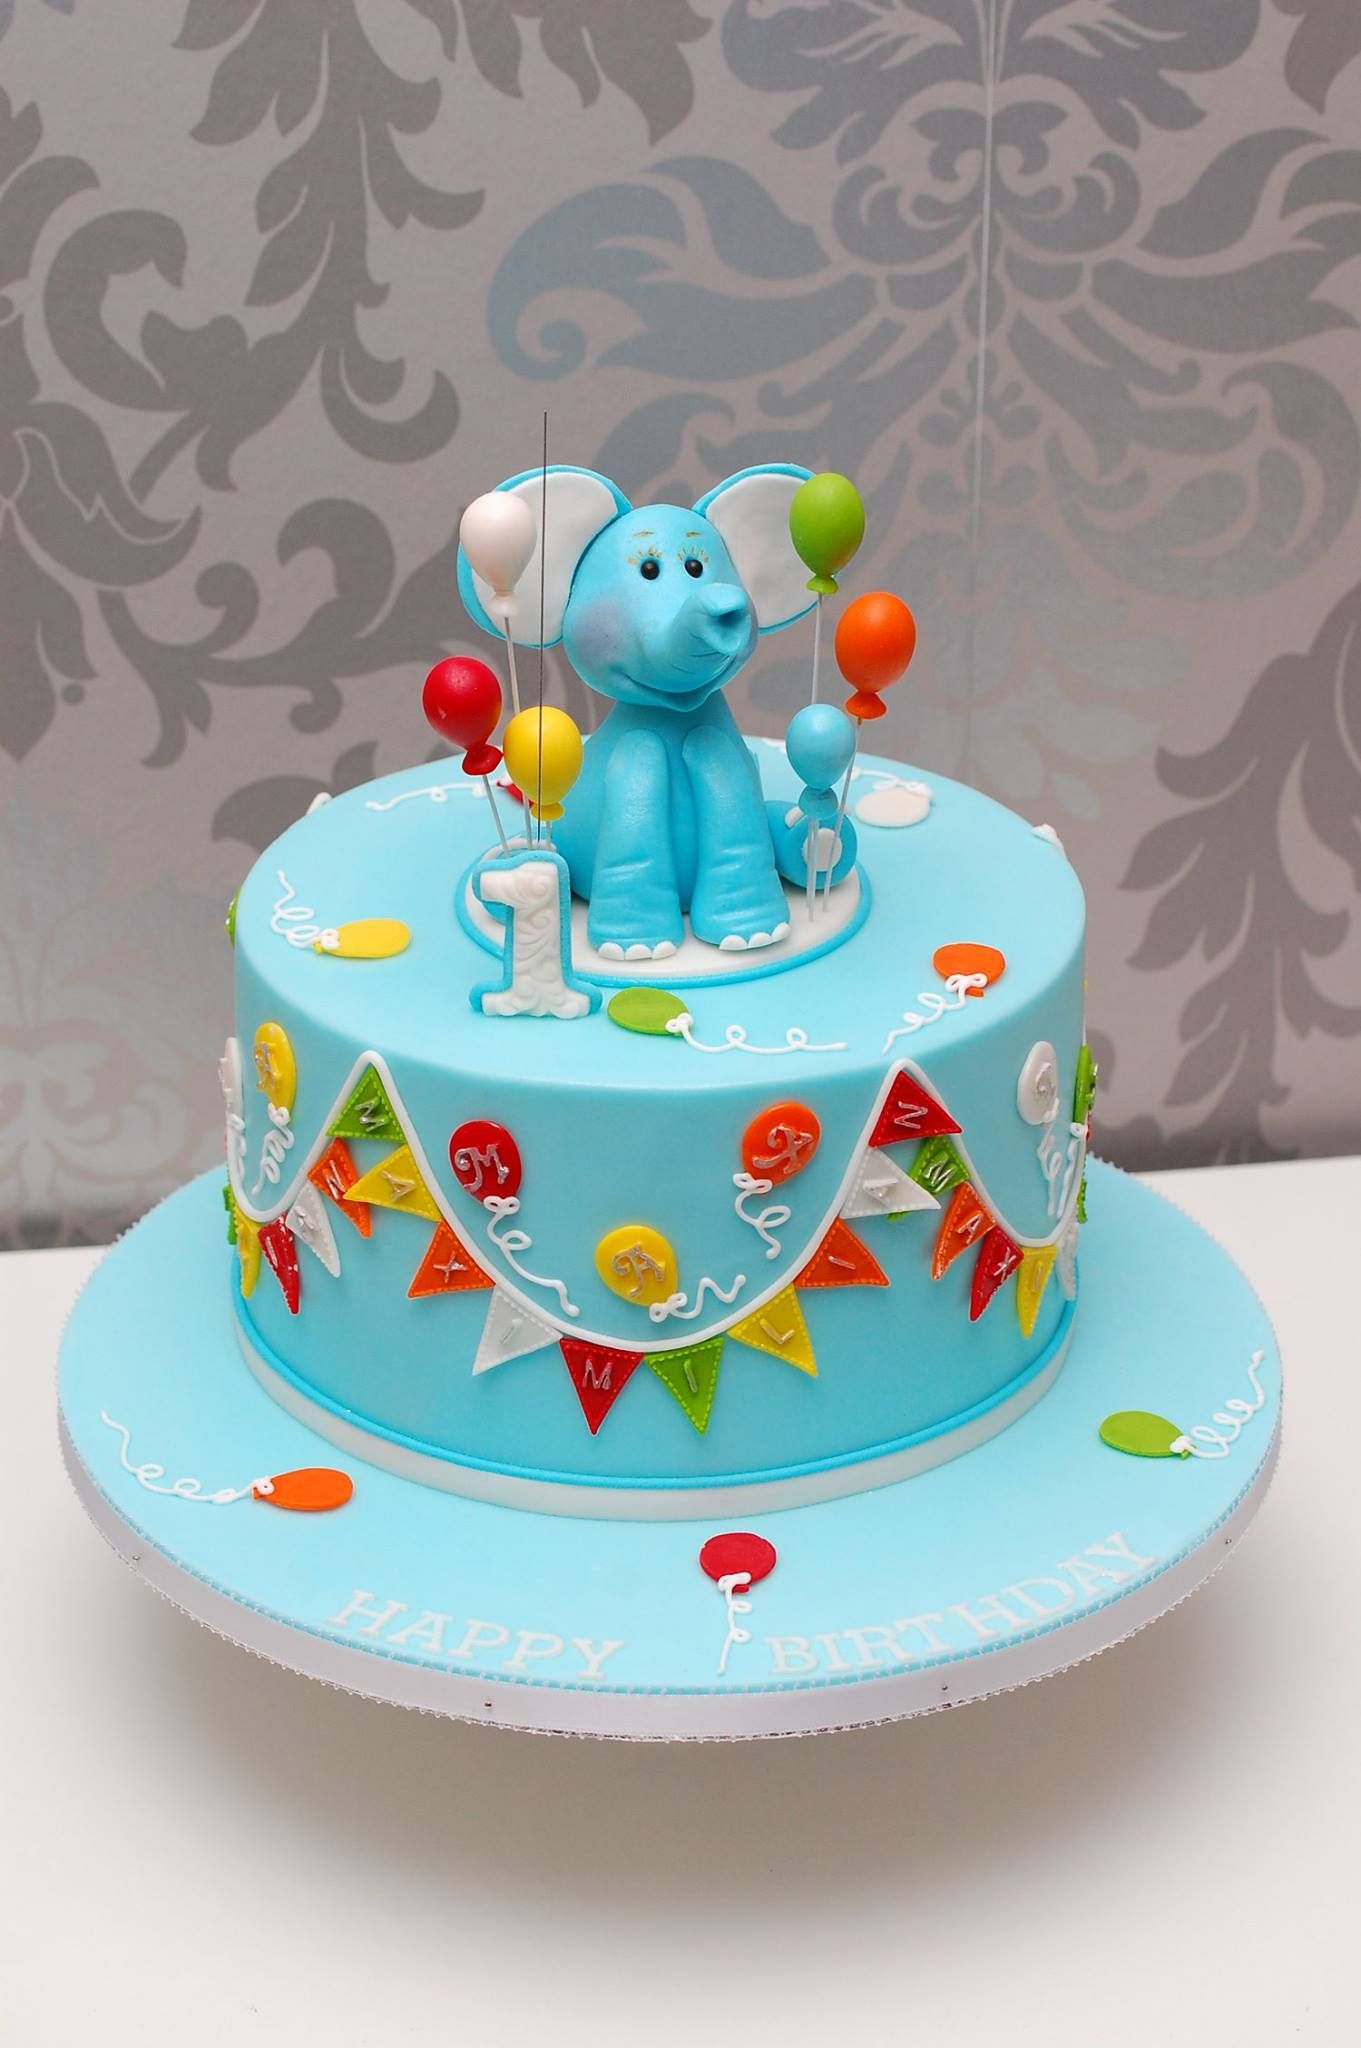 Fondant Kuchen Rezept Kinder Geburtstagstorte Elefant Cupcake And Co In 2019